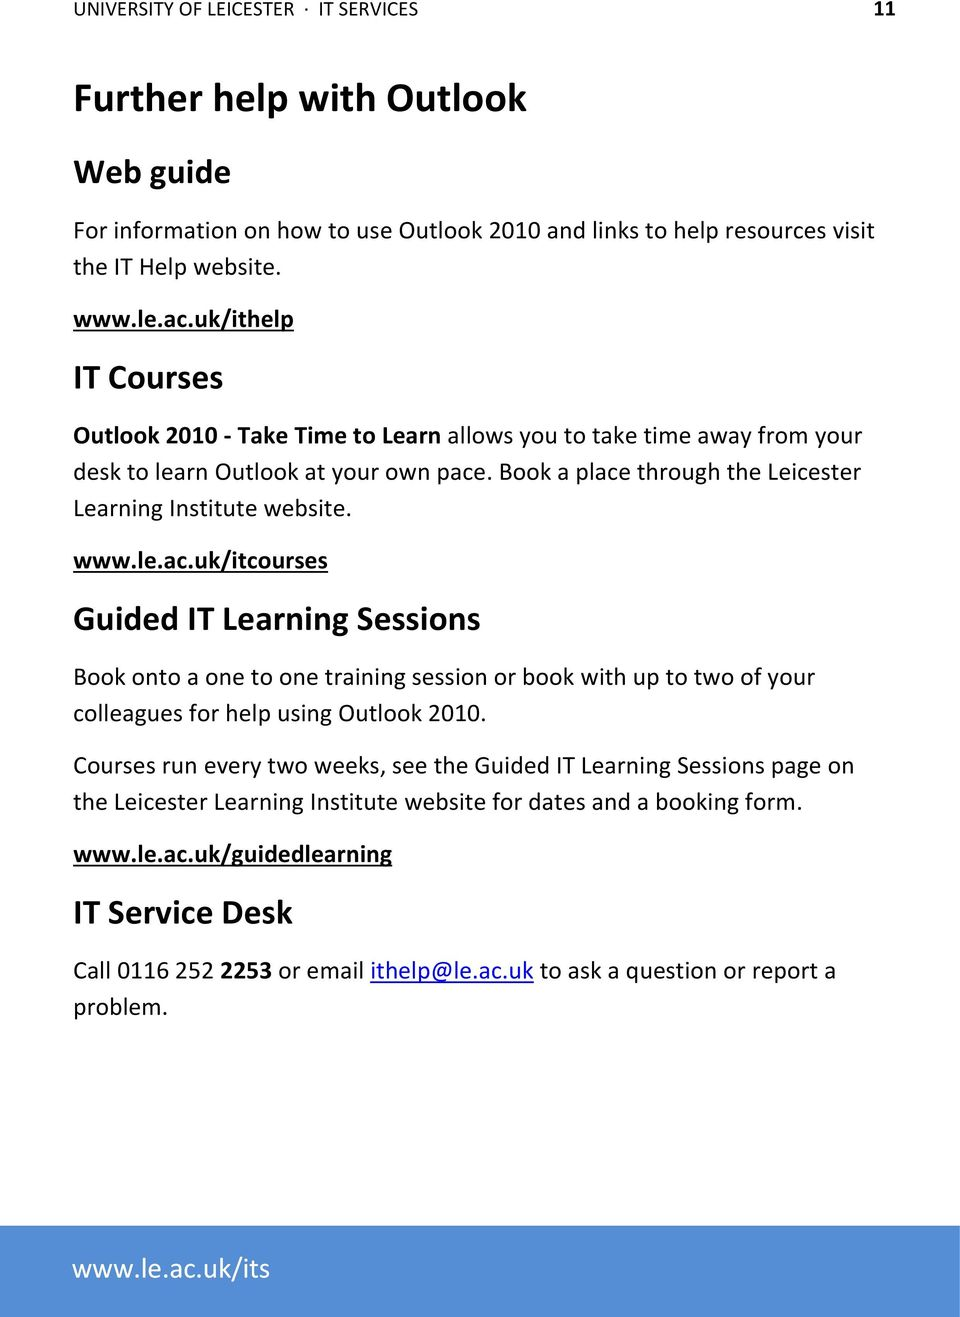 www.le.ac.uk/itcourses Guided IT Learning Sessions Book onto a one to one training session or book with up to two of your colleagues for help using Outlook 2010.